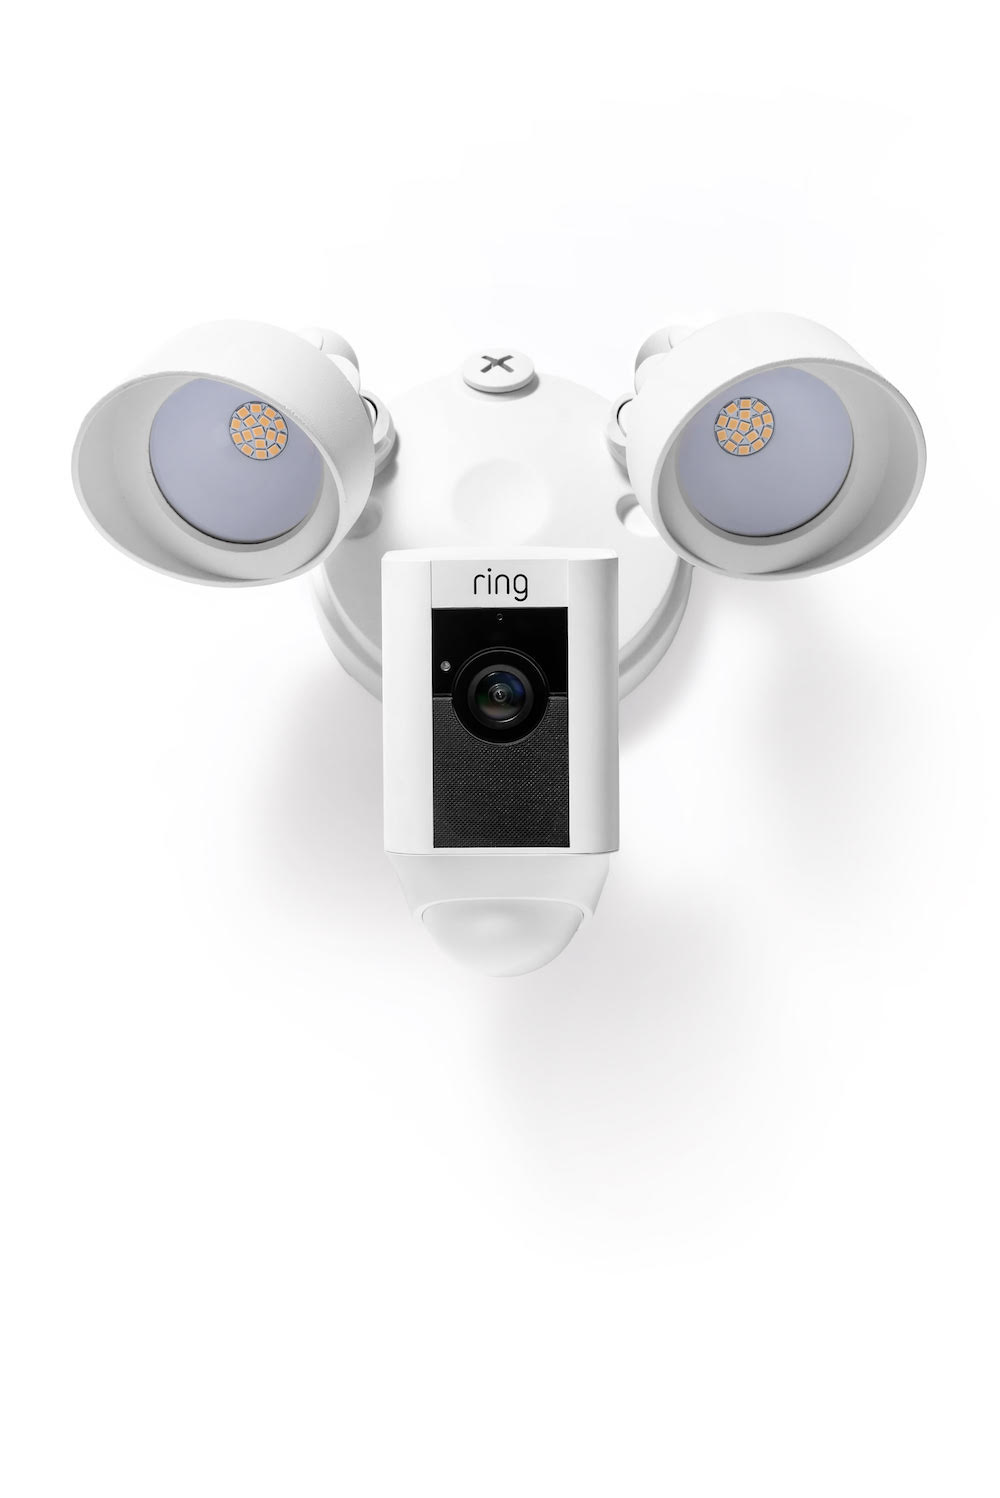 Ring Floodlight Cam Announced At Ces 2017 Best Buy Blog